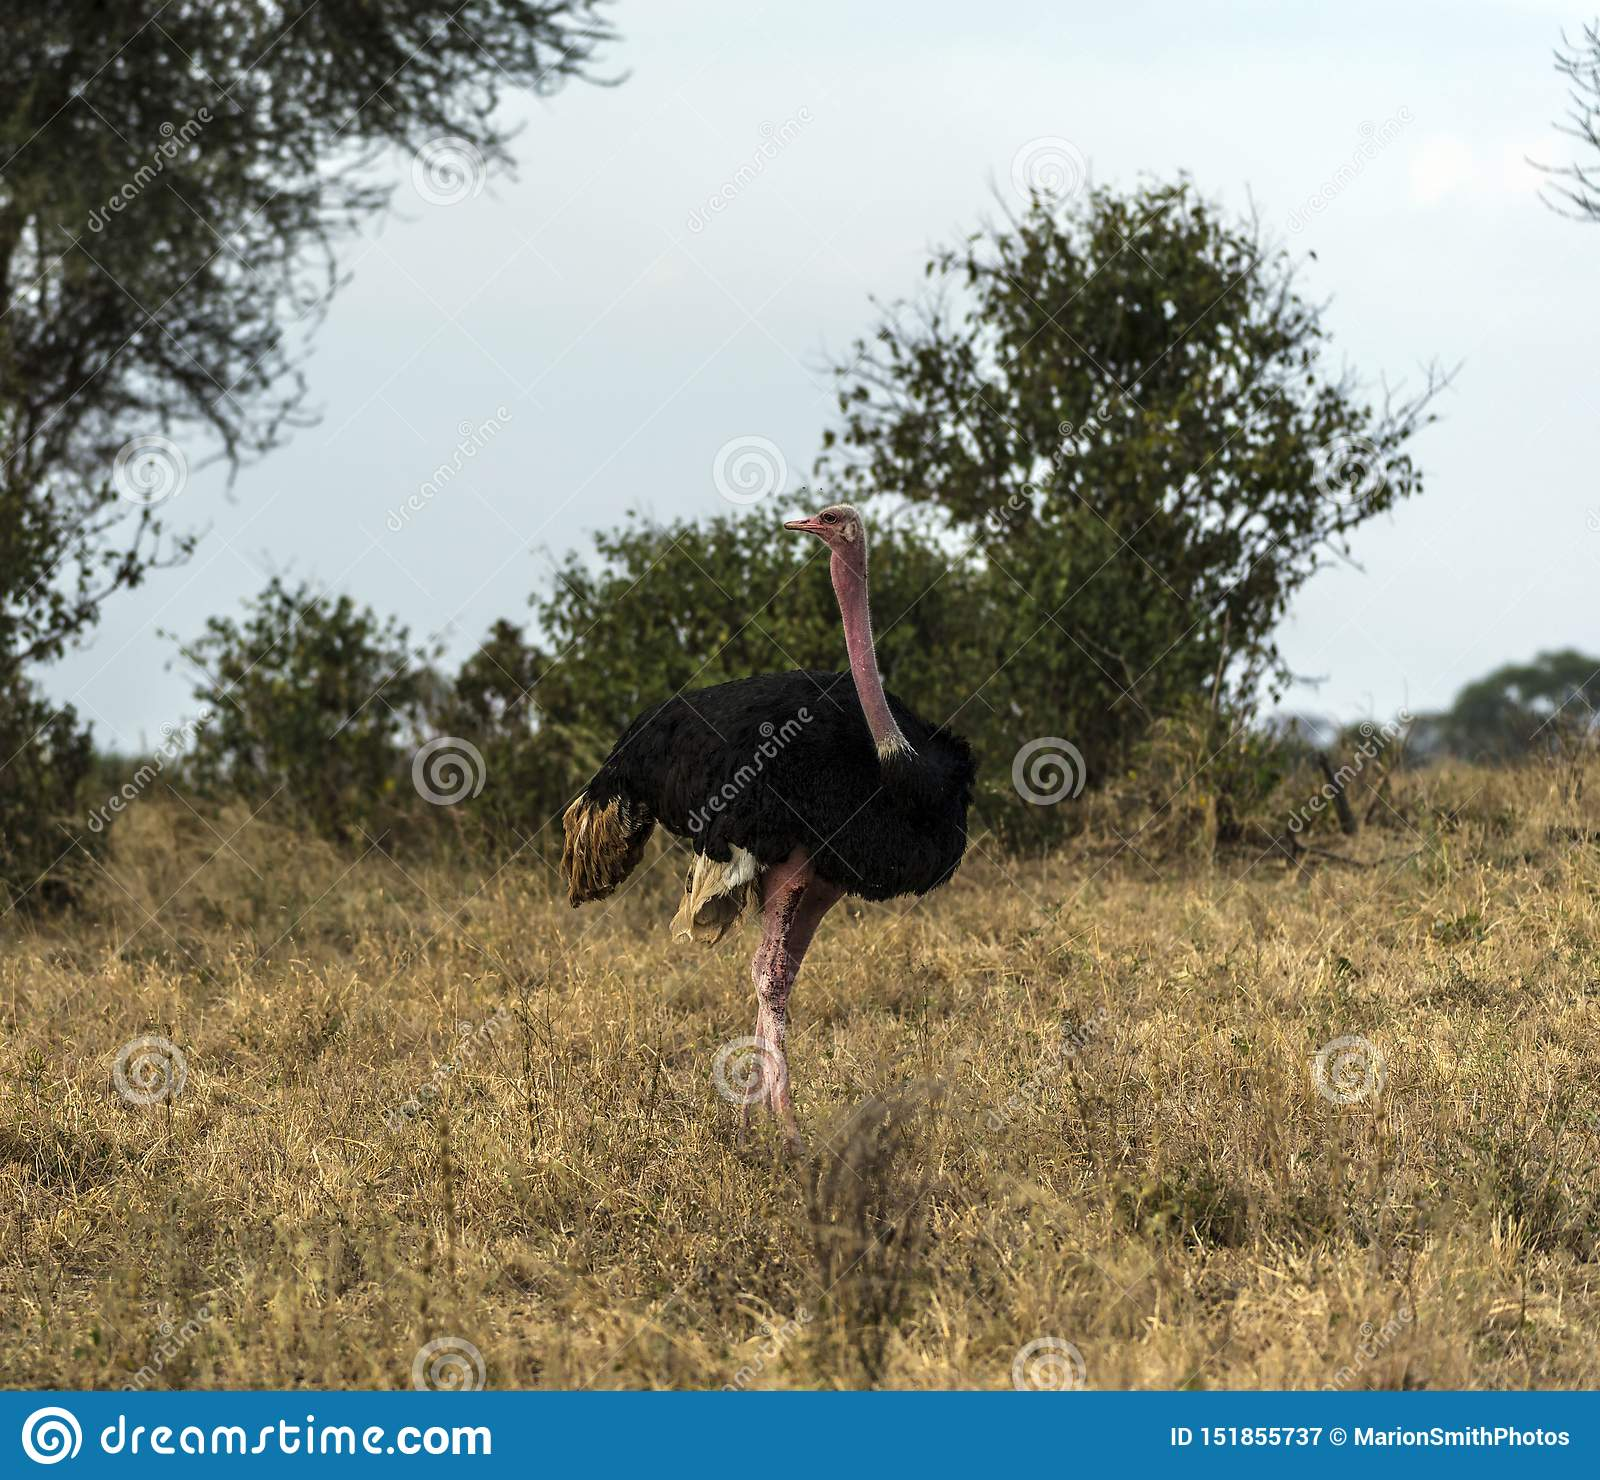 Masai ostrich, also known as the pink-necked ostrich